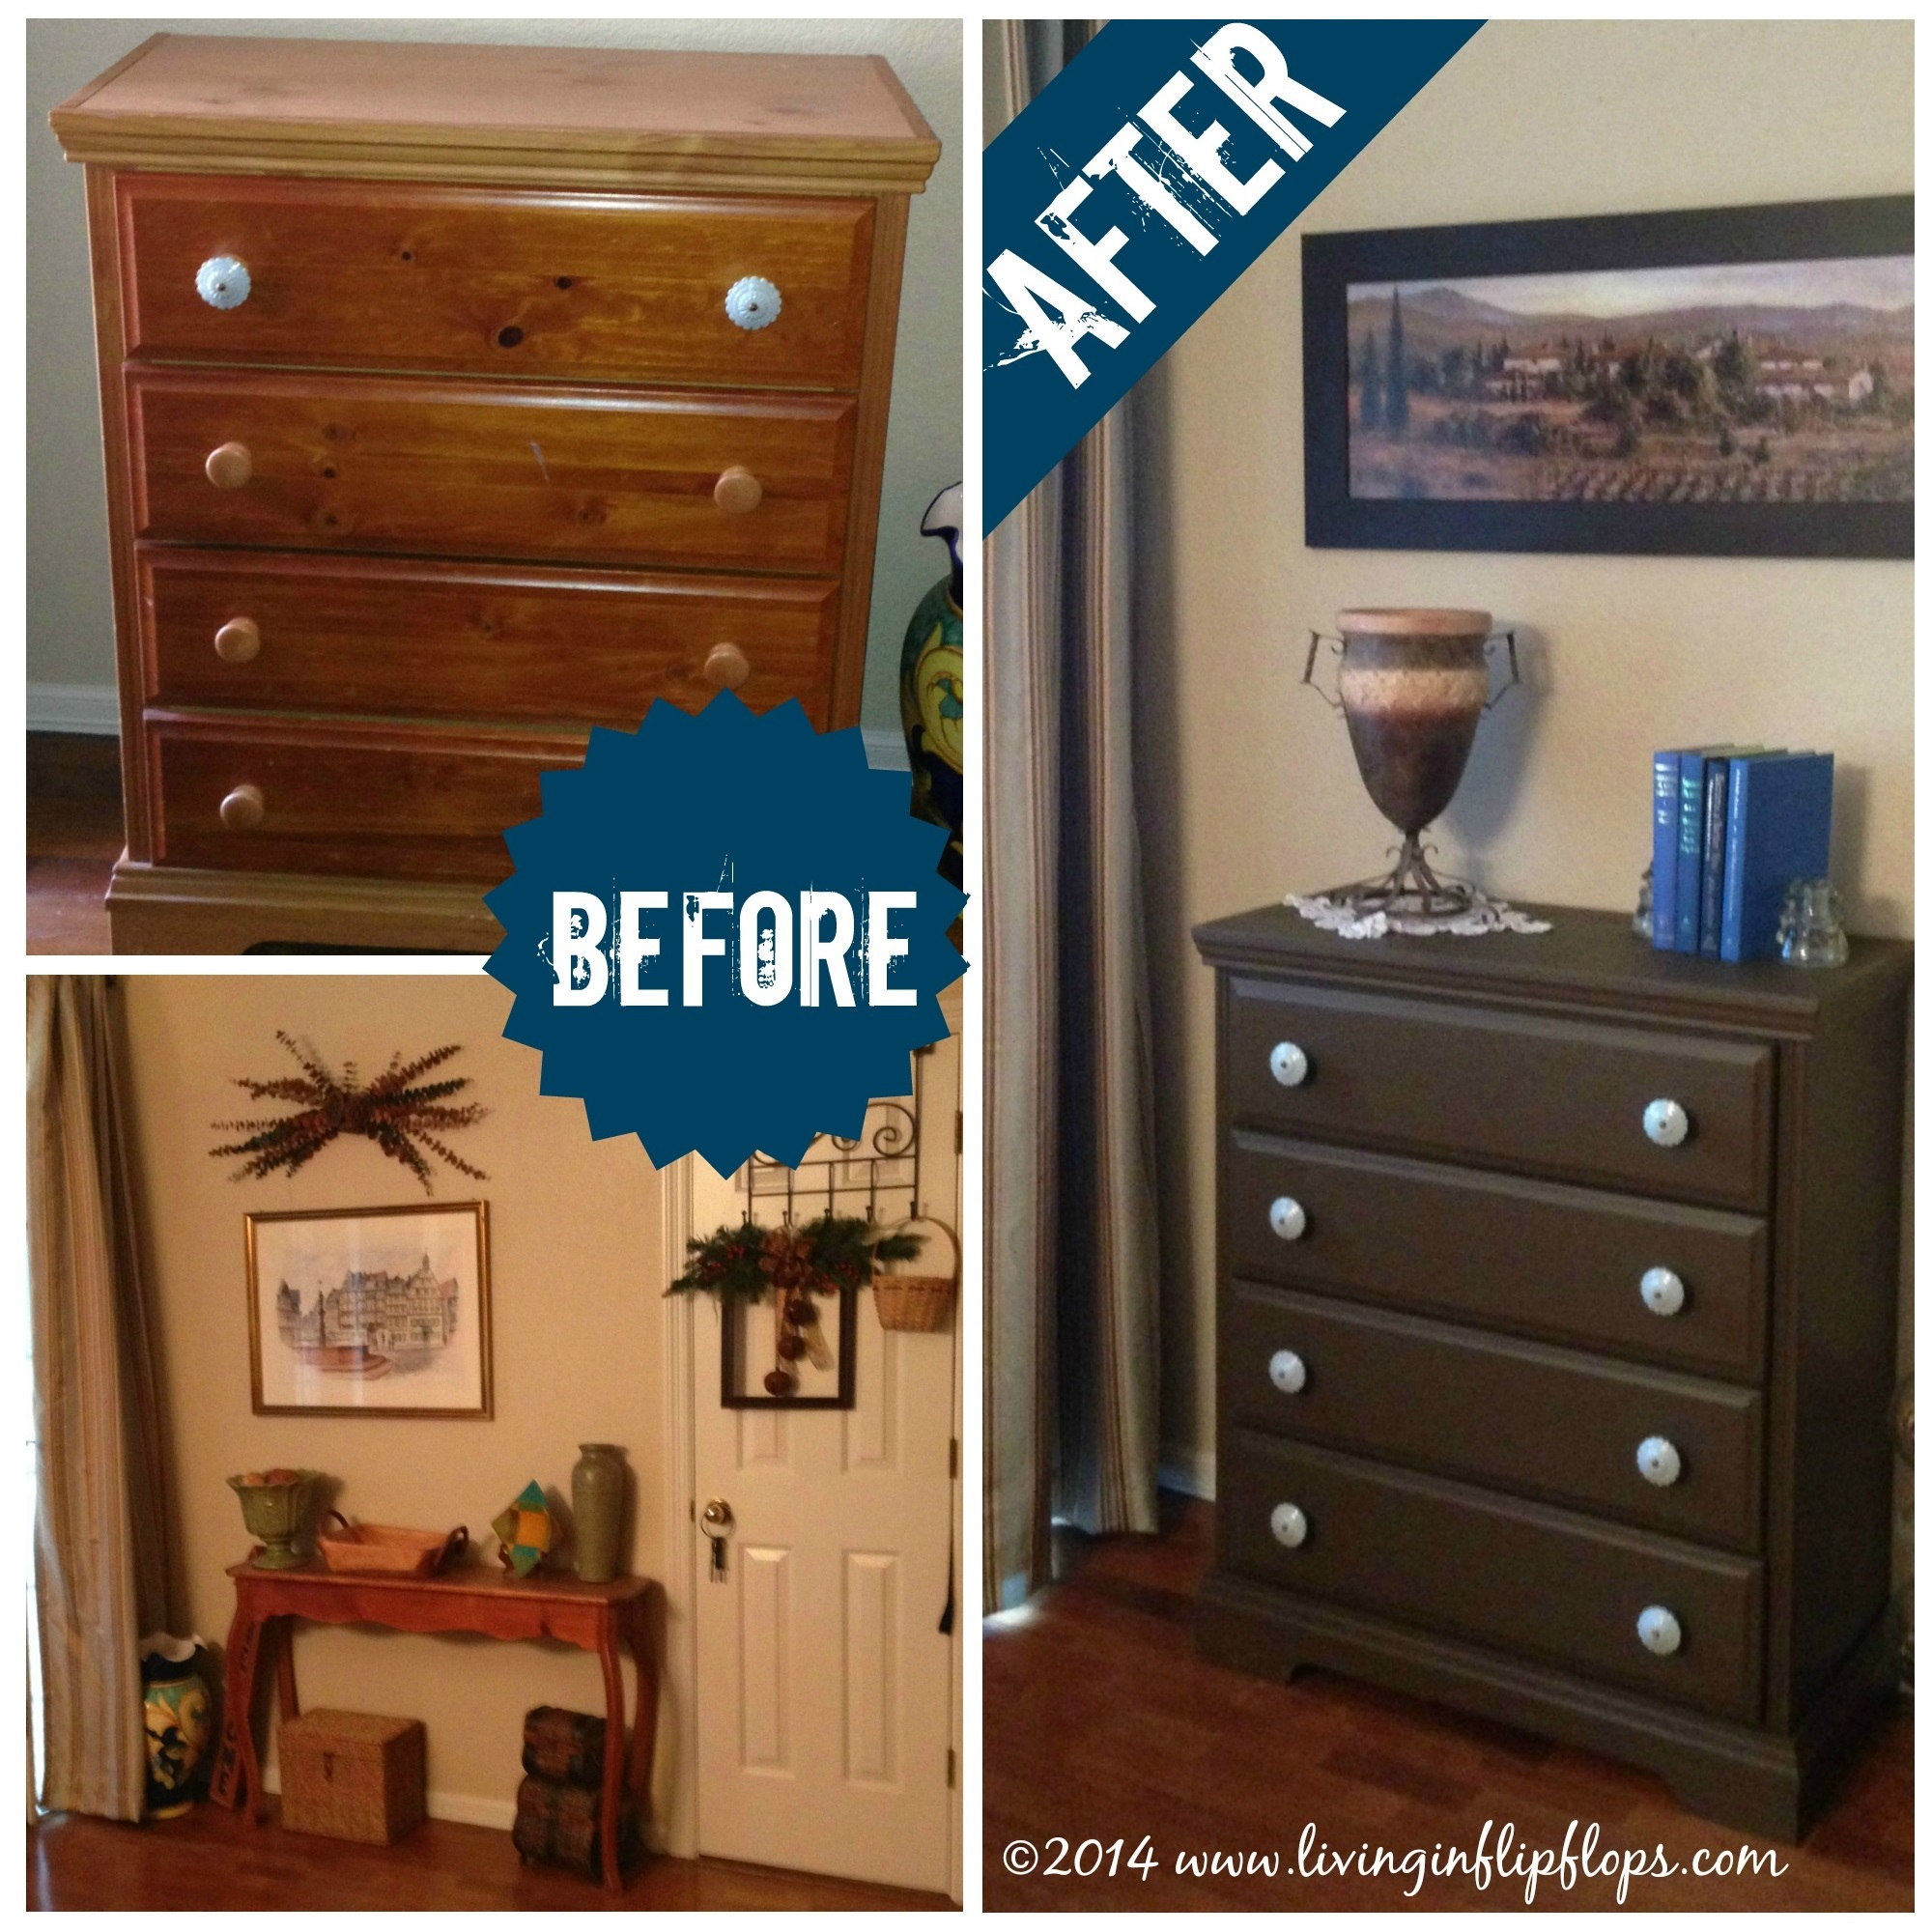 Painting Bedroom Furniture Before And After Before And After Diy Furniture Restore 4 Drawer Dresser